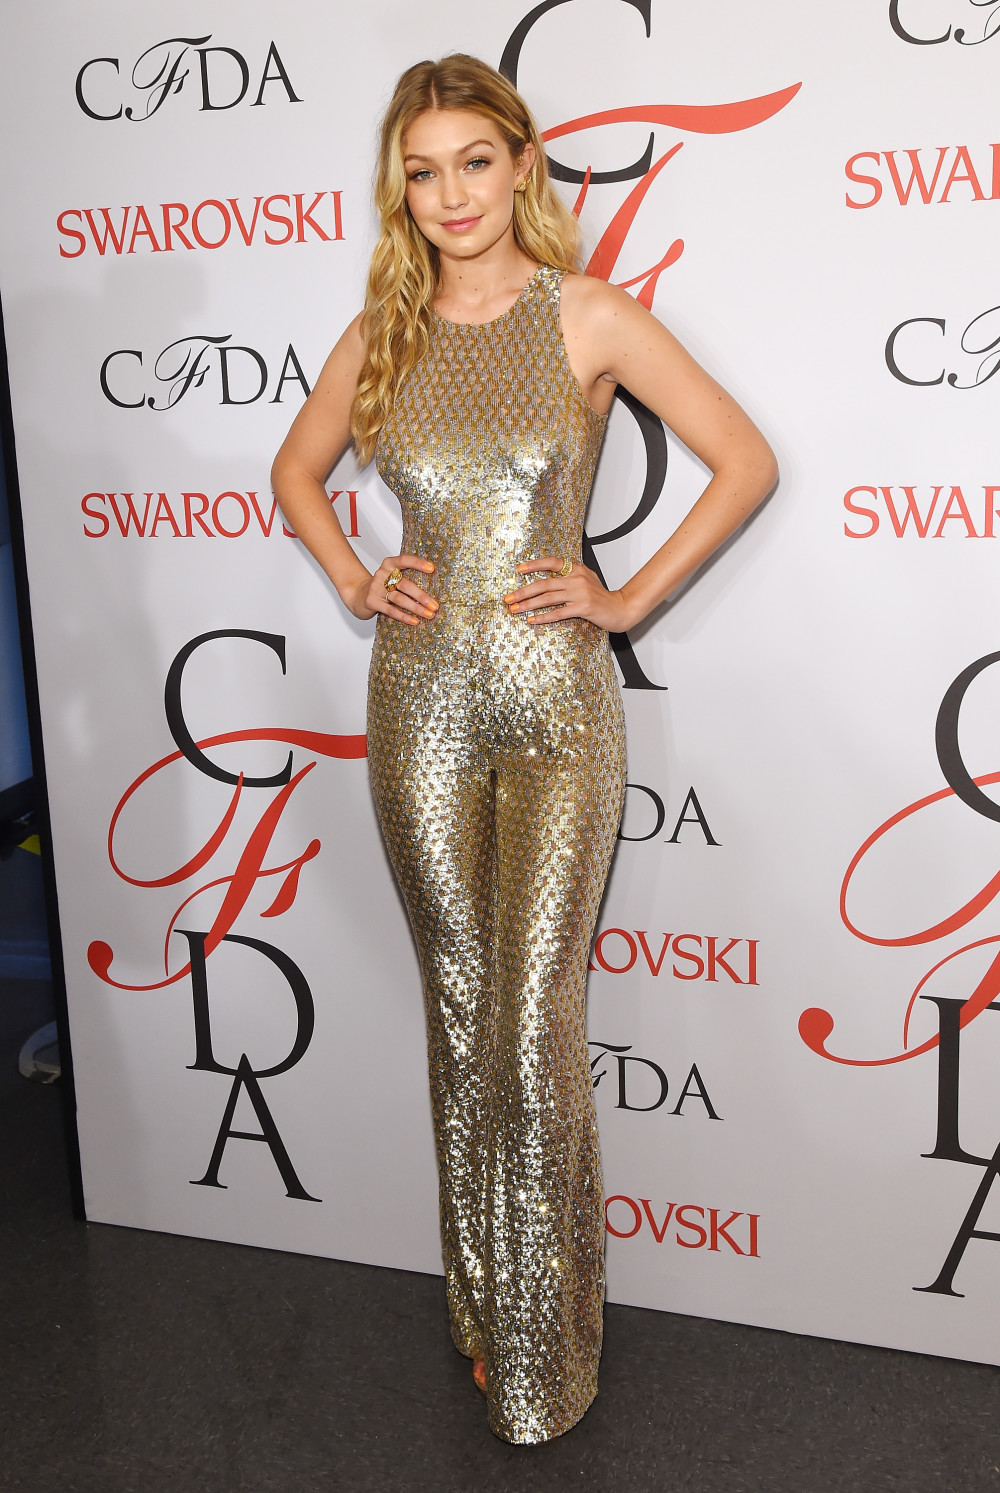 NEW YORK, NY - JUNE 01: Gigi Hadid poses on the winners walk at the 2015 CFDA Fashion Awards at Alice Tully Hall at Lincoln Center on June 1, 2015 in New York City. (Photo by Larry Busacca/Getty Images)